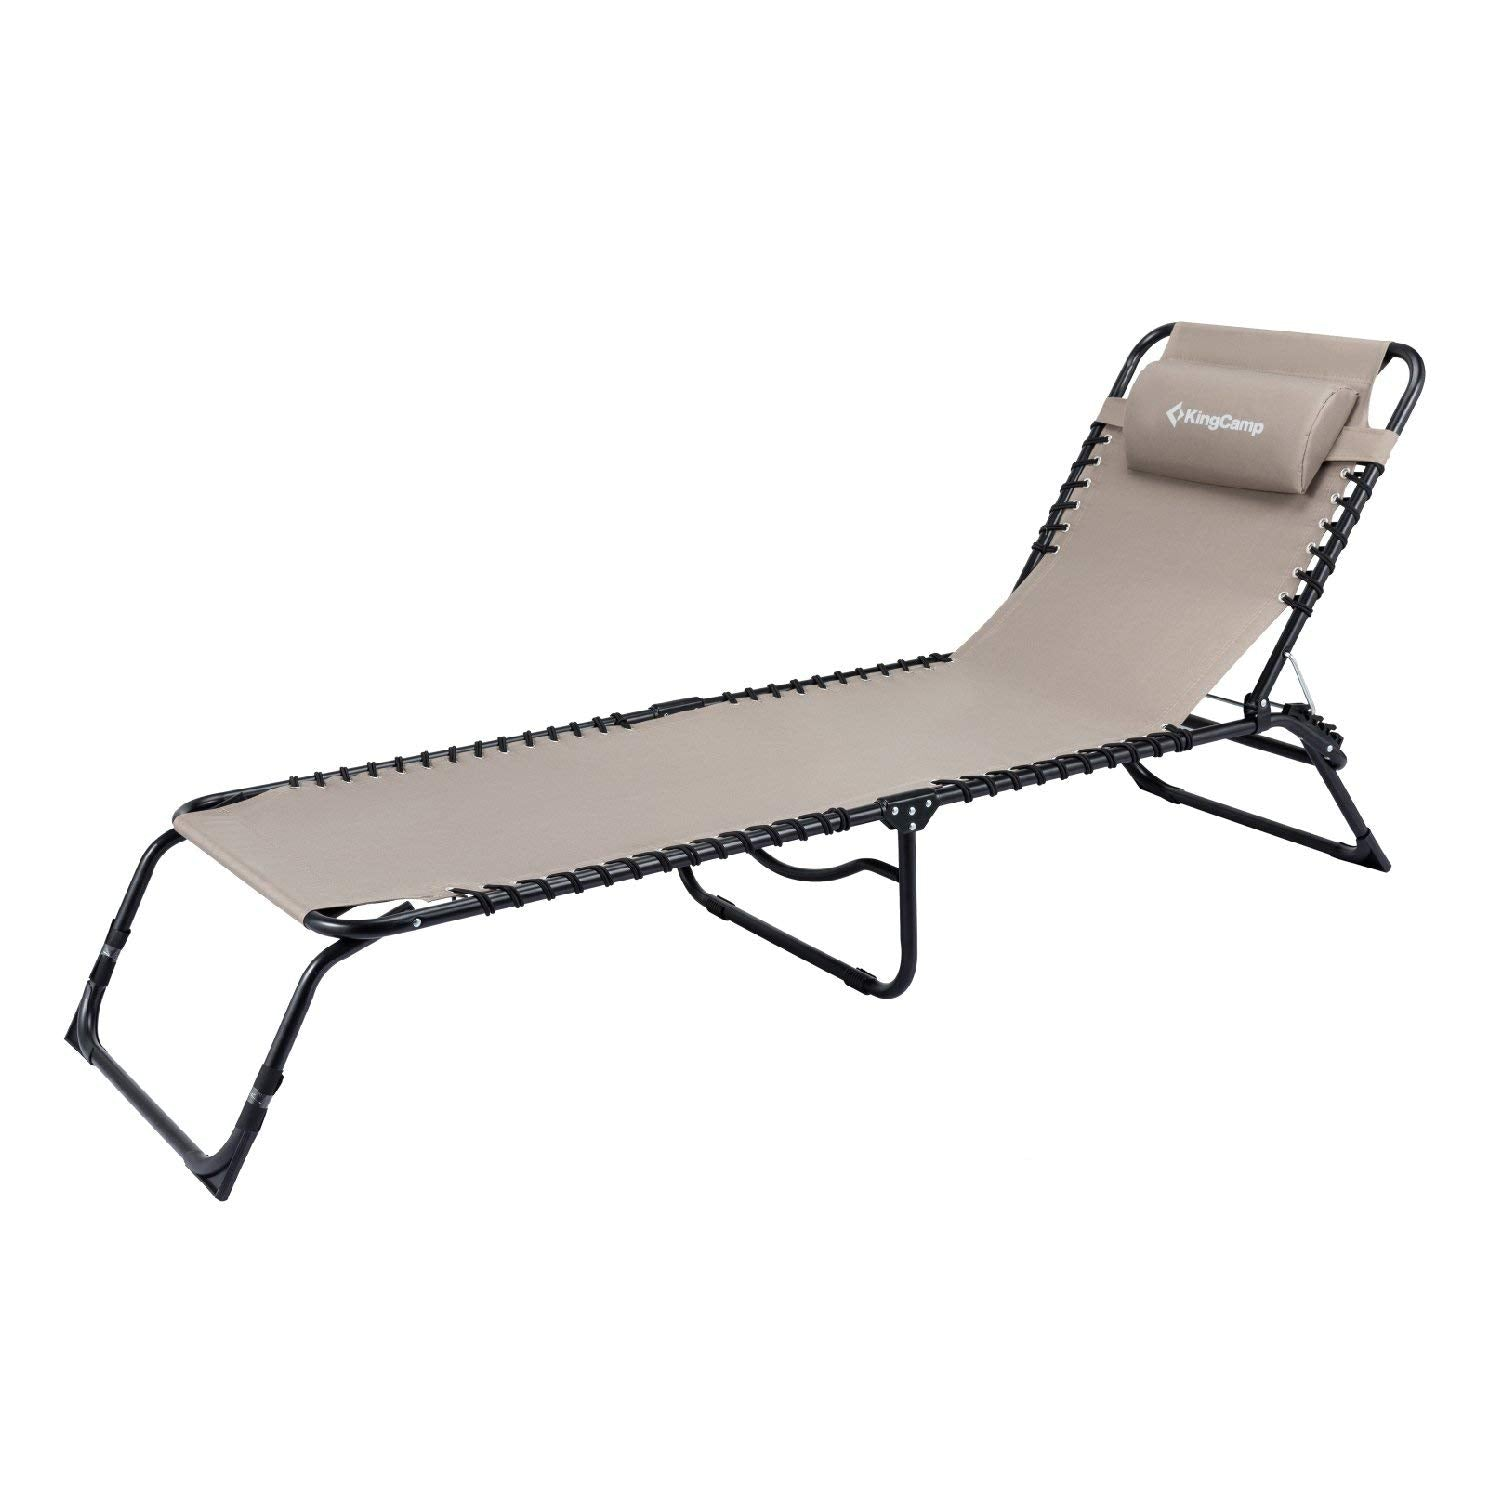 8e5b05823112 KingCamp Patio Lounge Chair 3 Reclining Positions Steel Frame 600D Oxford  Folding Camping Cot Chaise Bed with Removable Pillow for Camping Yard Beach  ...